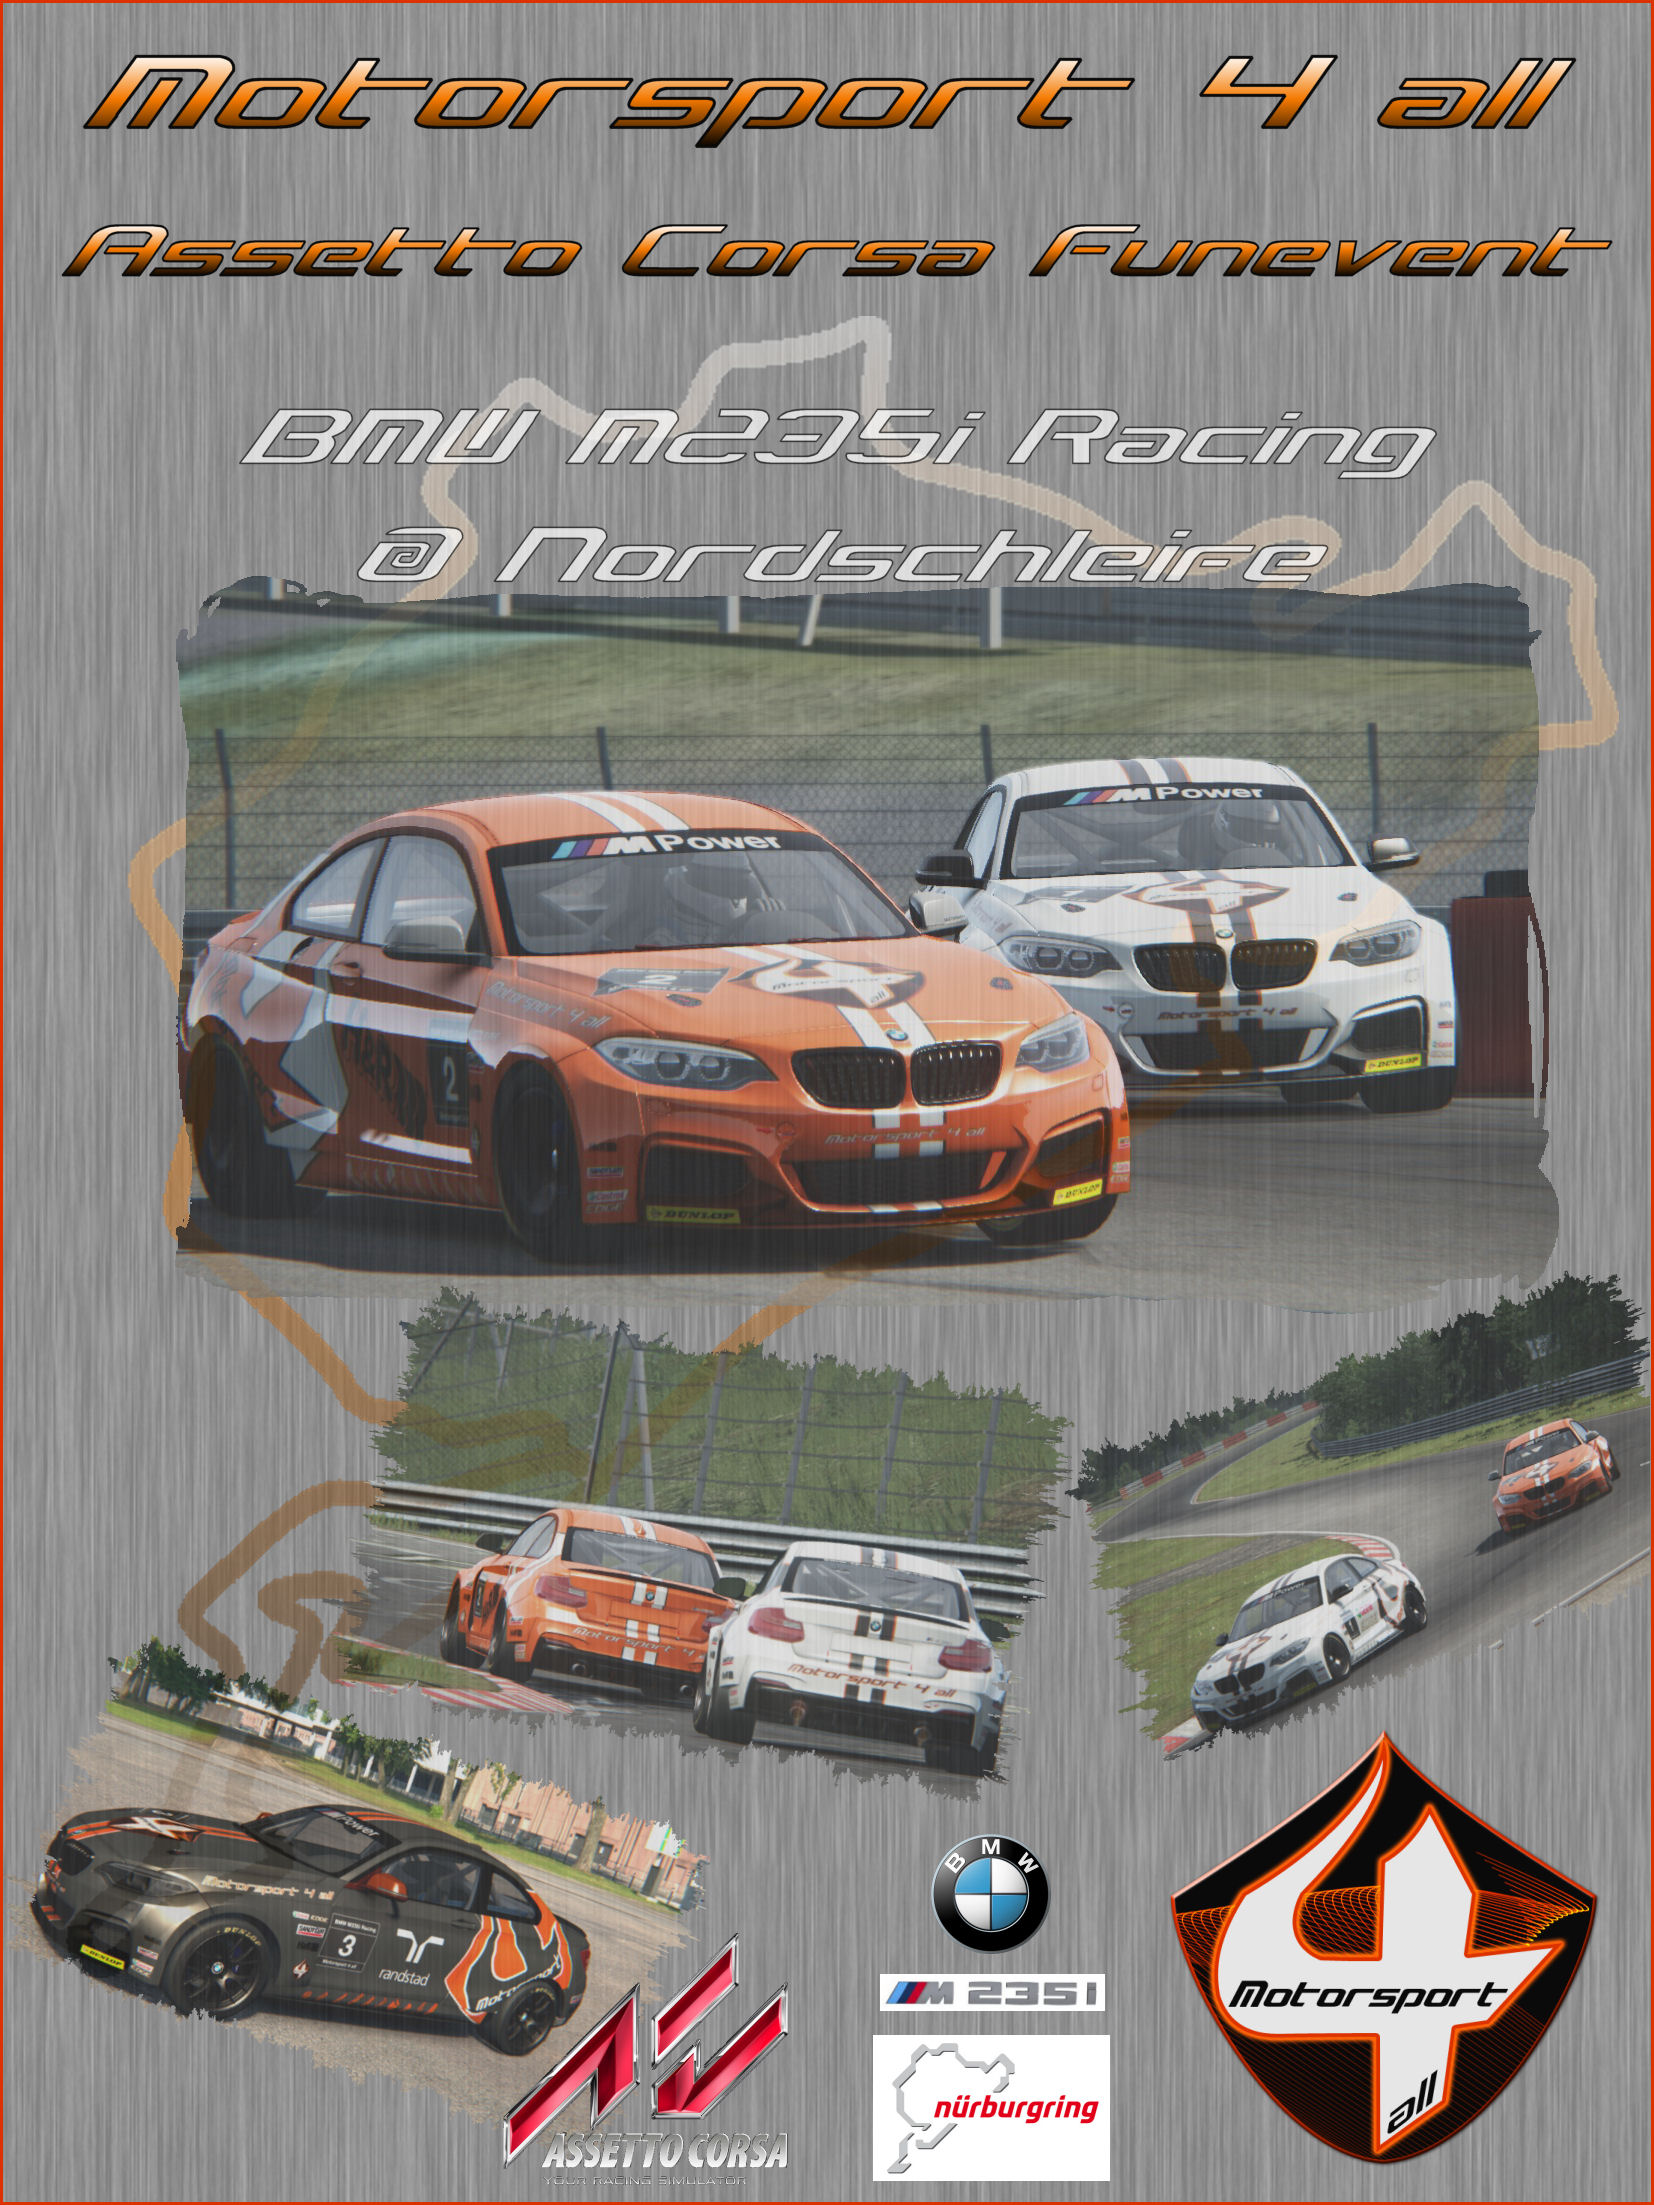 Assetto Corsa Funevent